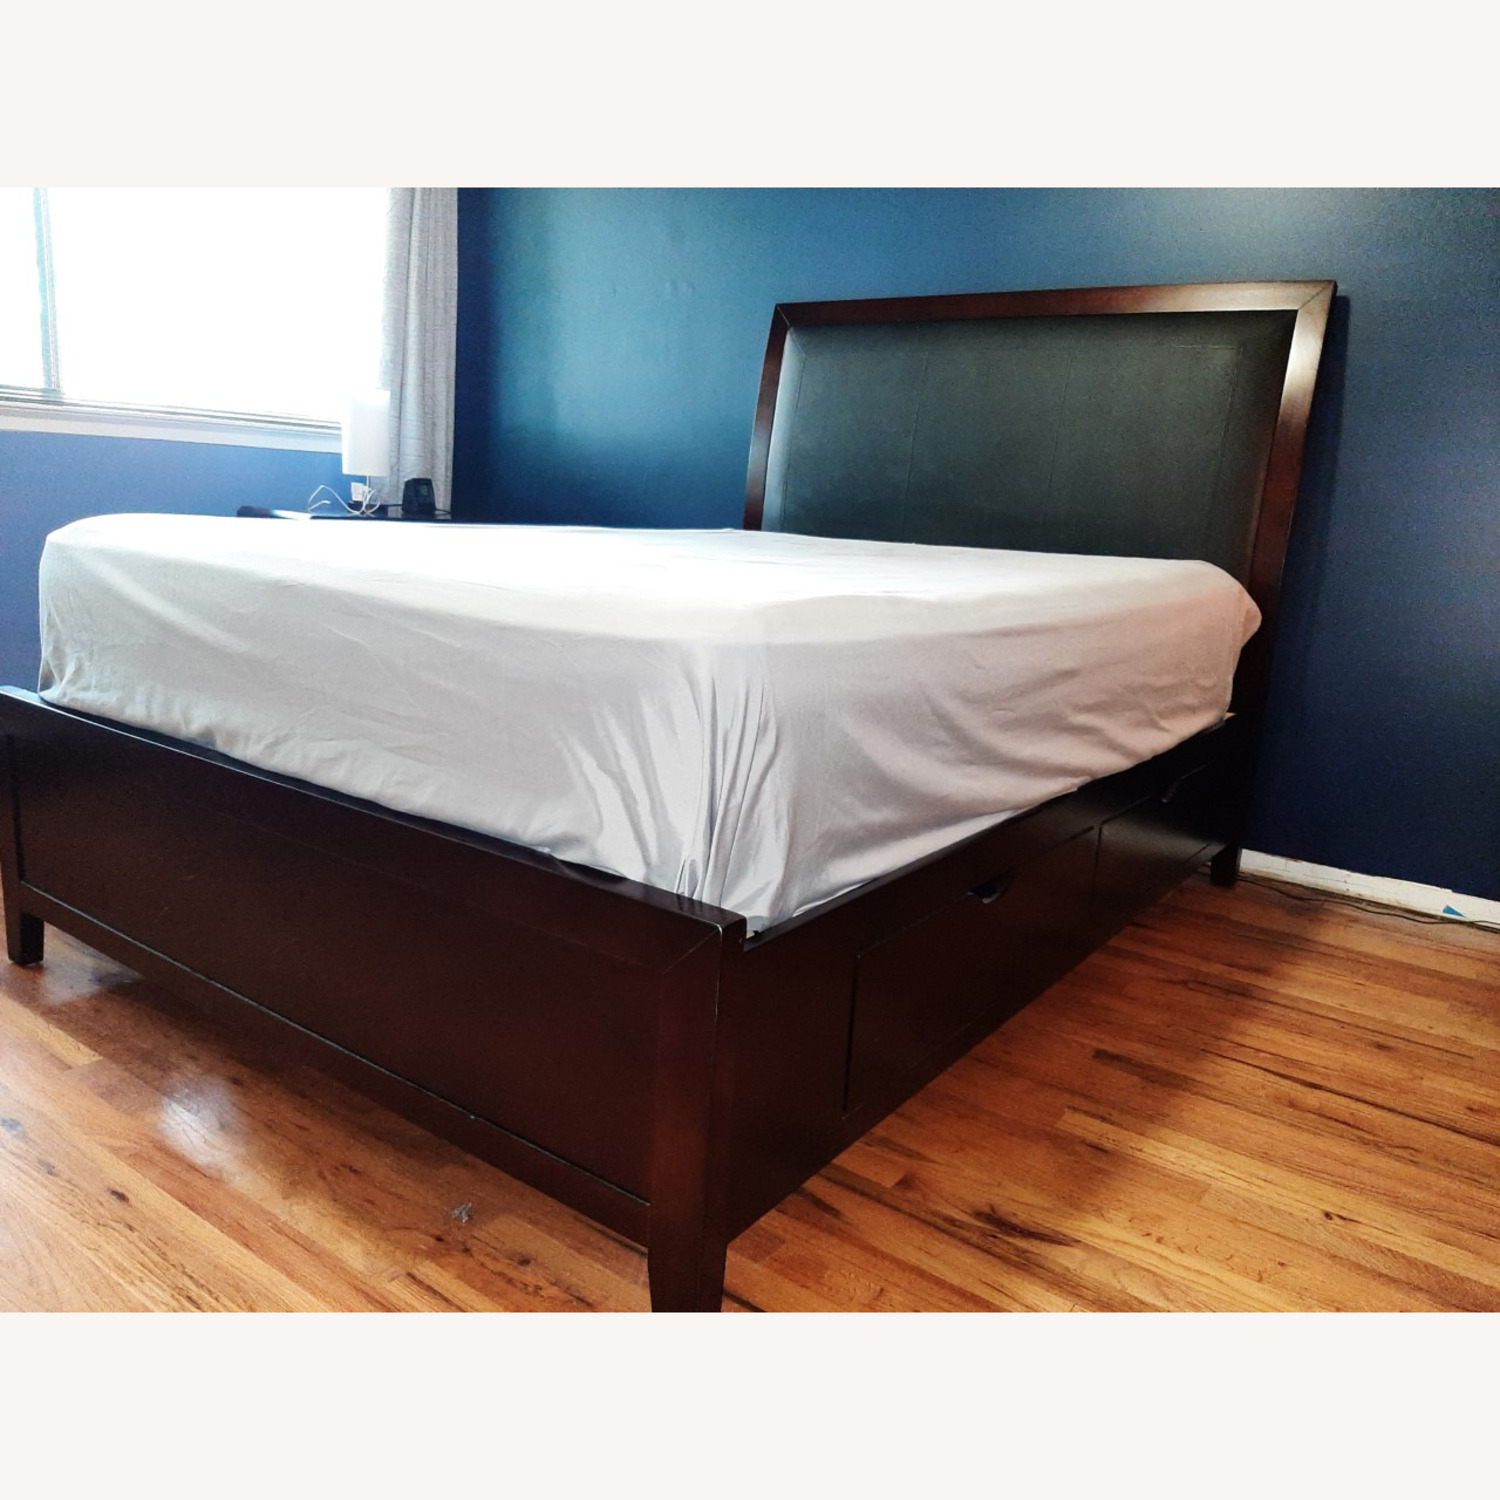 Full Sized Wood Bed Frame with Drawers - image-1